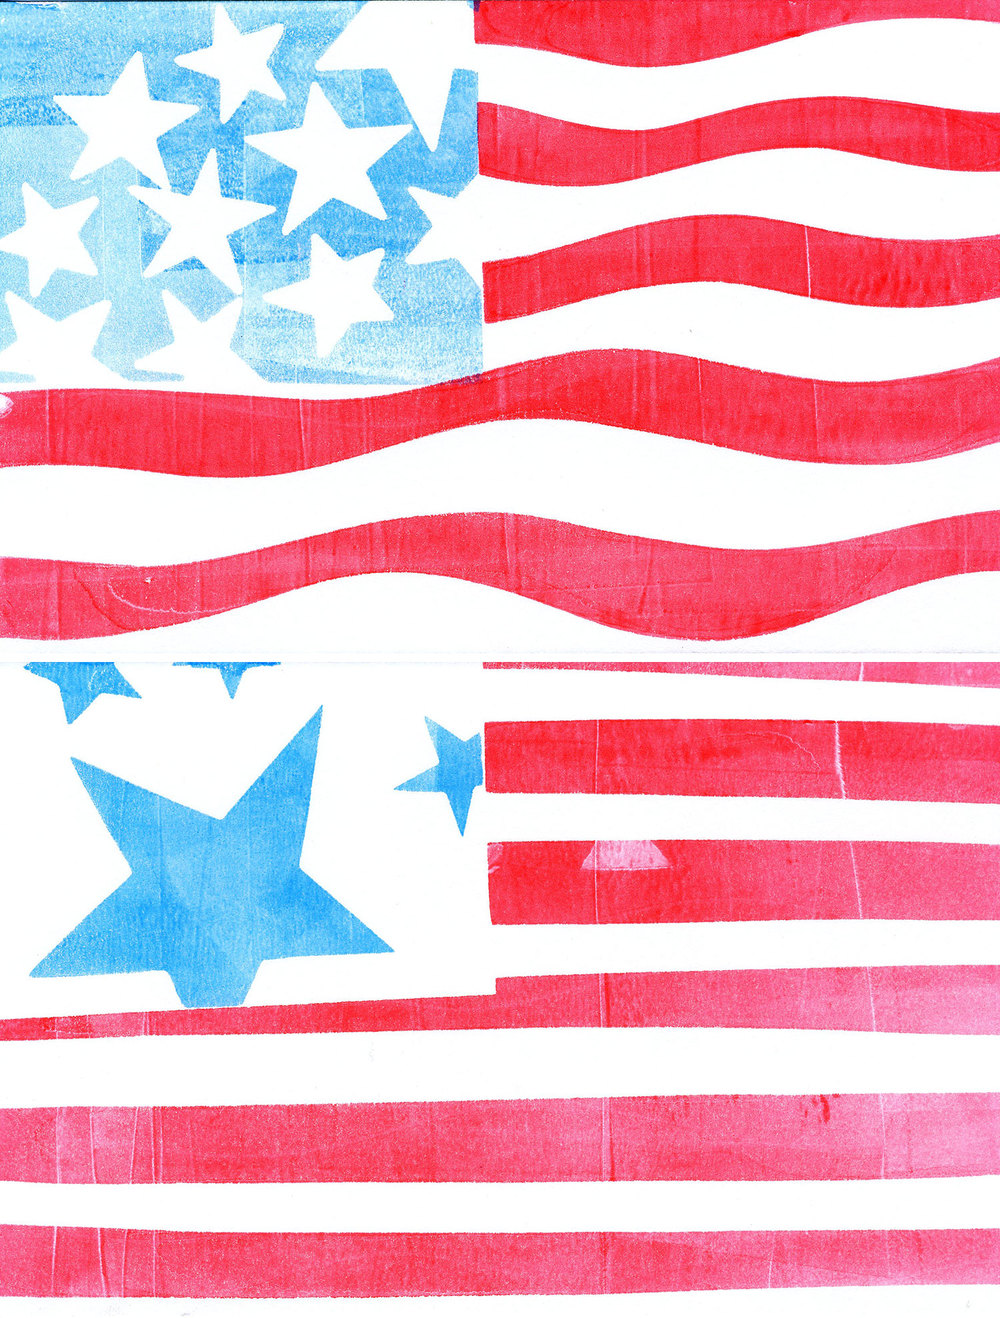 I cut out stars and striped paper masks to create the flag prints.